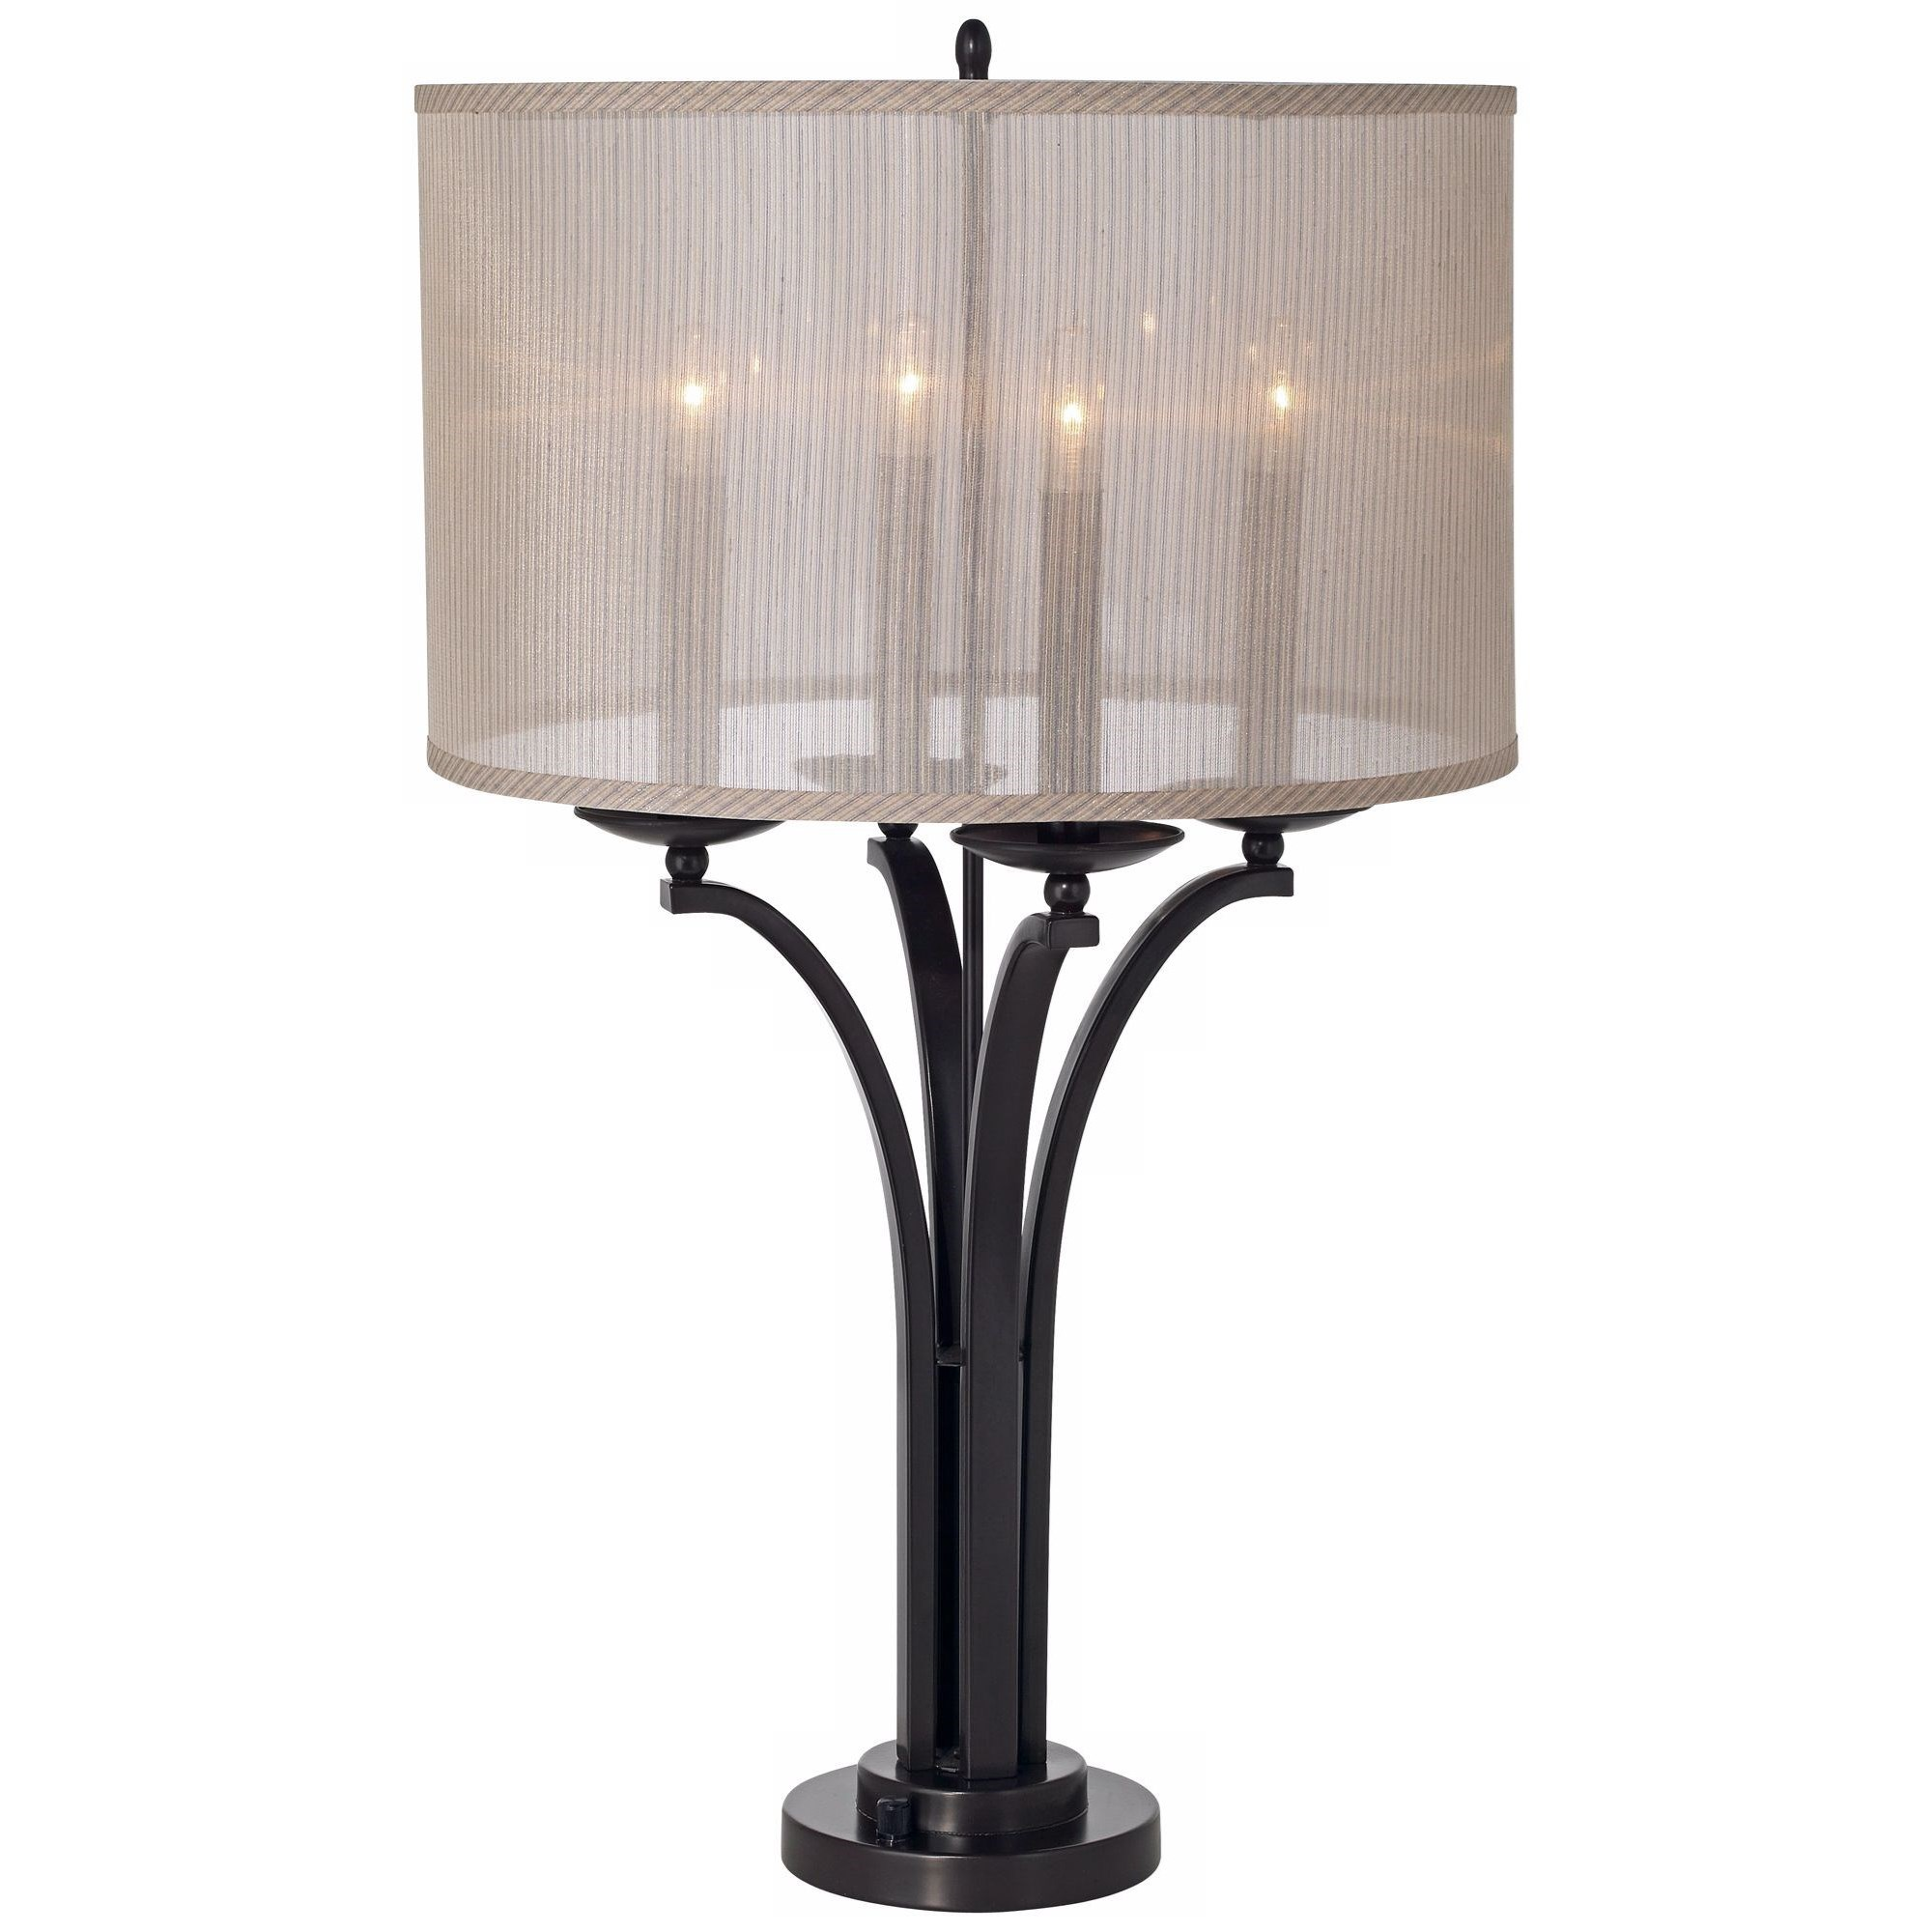 Table Lamps Kig Pennsylvania Country Lamp at Bennett's Furniture and Mattresses